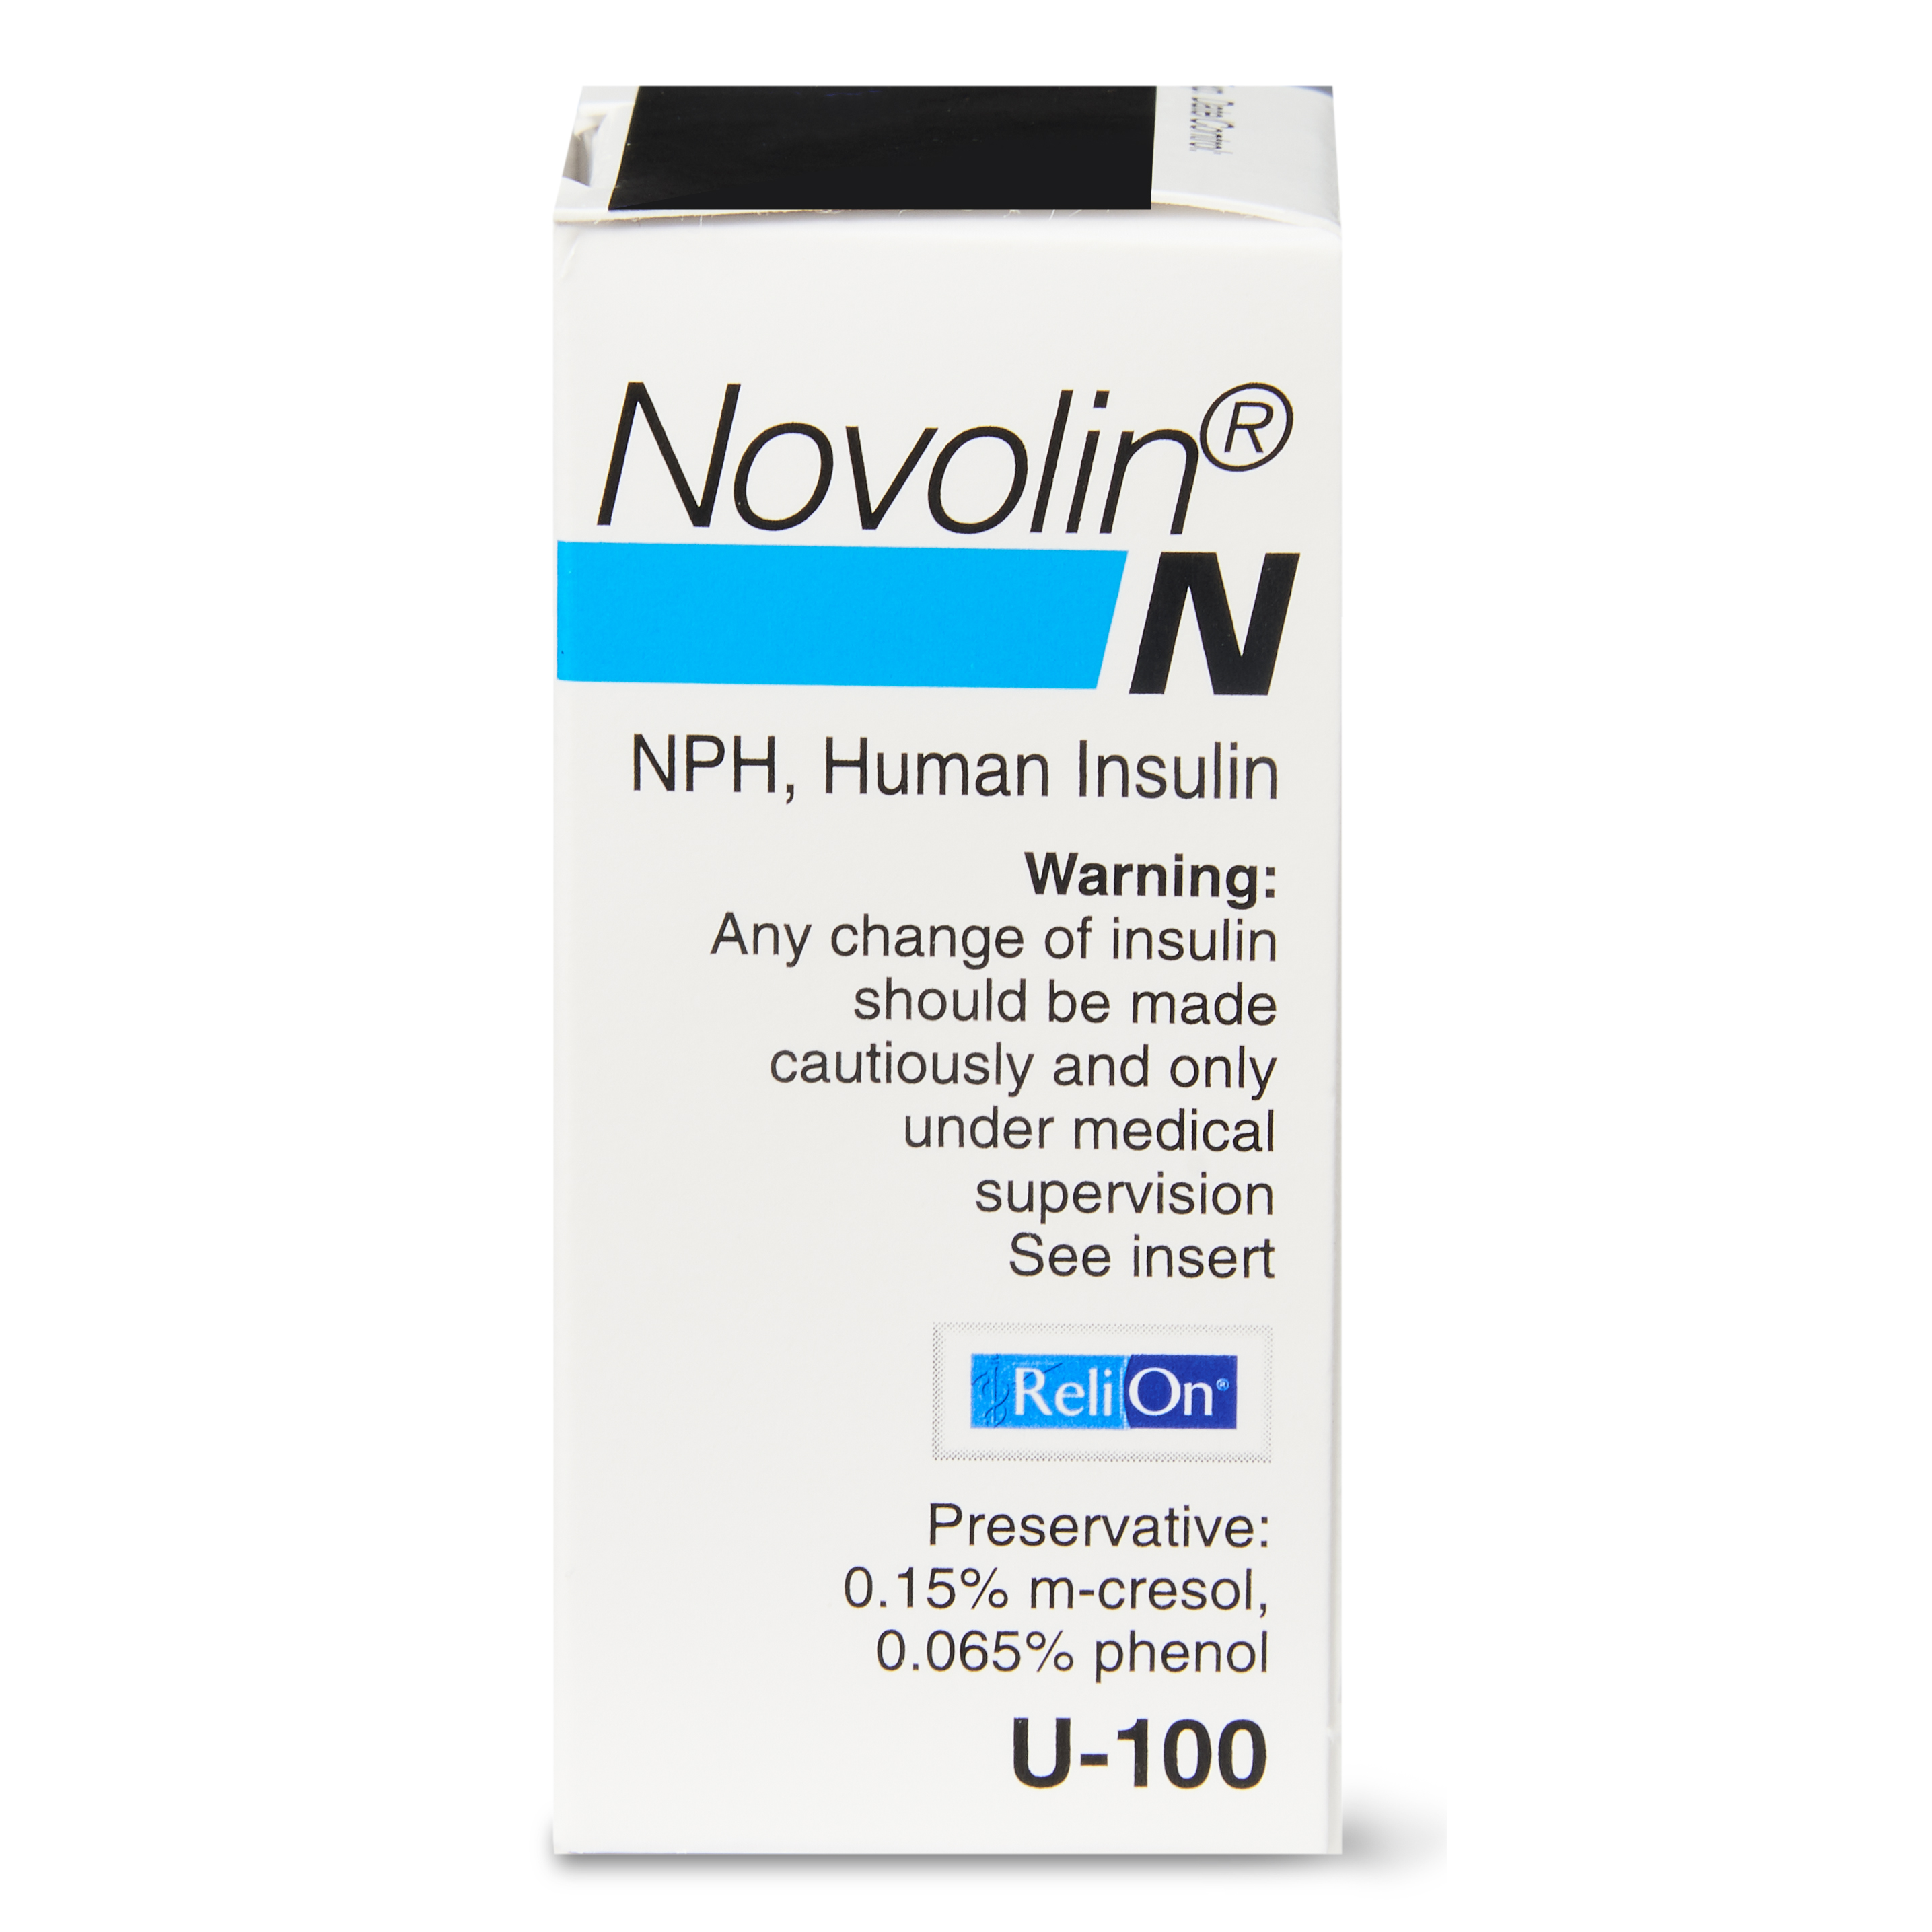 nph insulin coupon